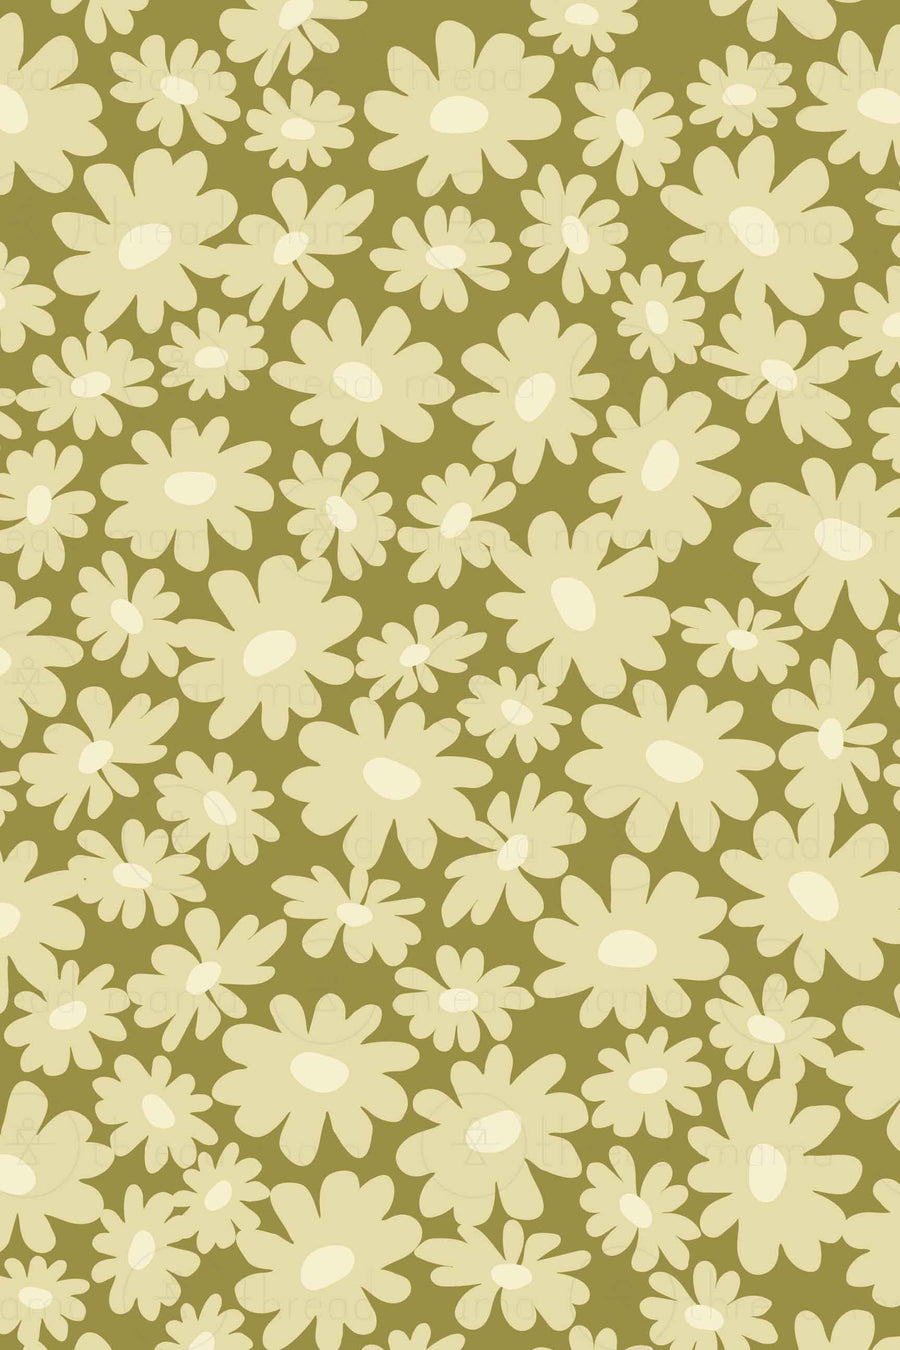 Background Pattern #51 collection (Printable Poster)